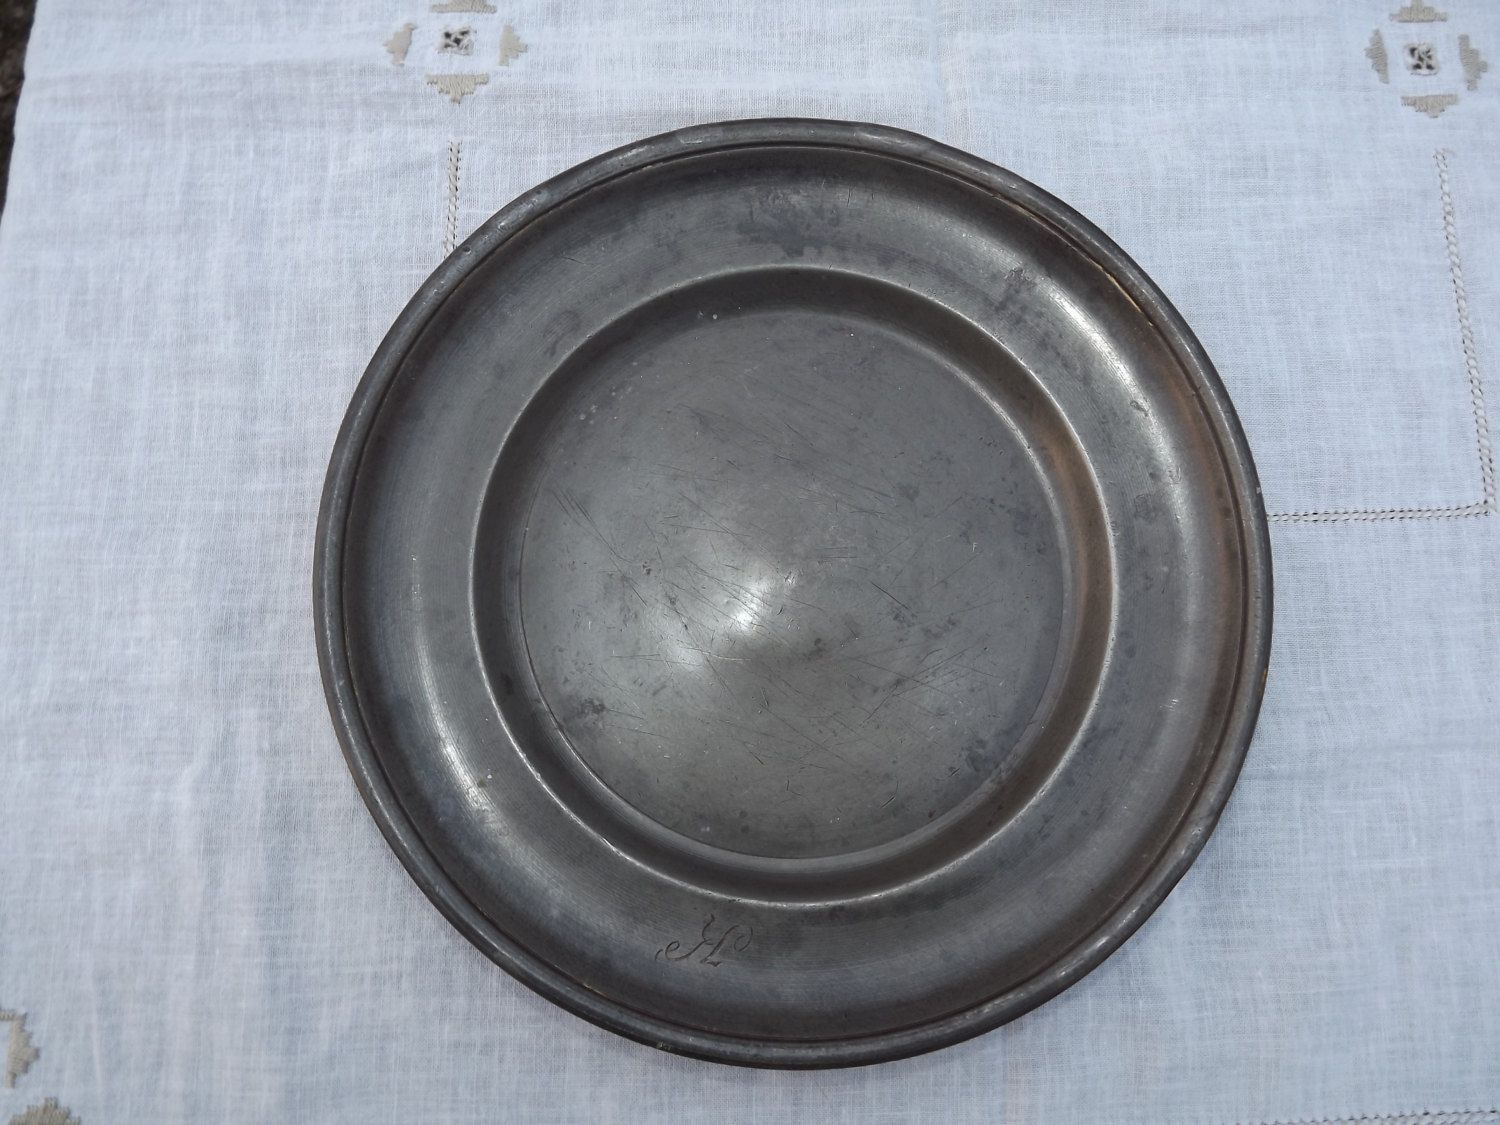 Pewter Plate Hallmark Chart England: Reserved For PJ Balhorn Antique, Pewter, Plate, European